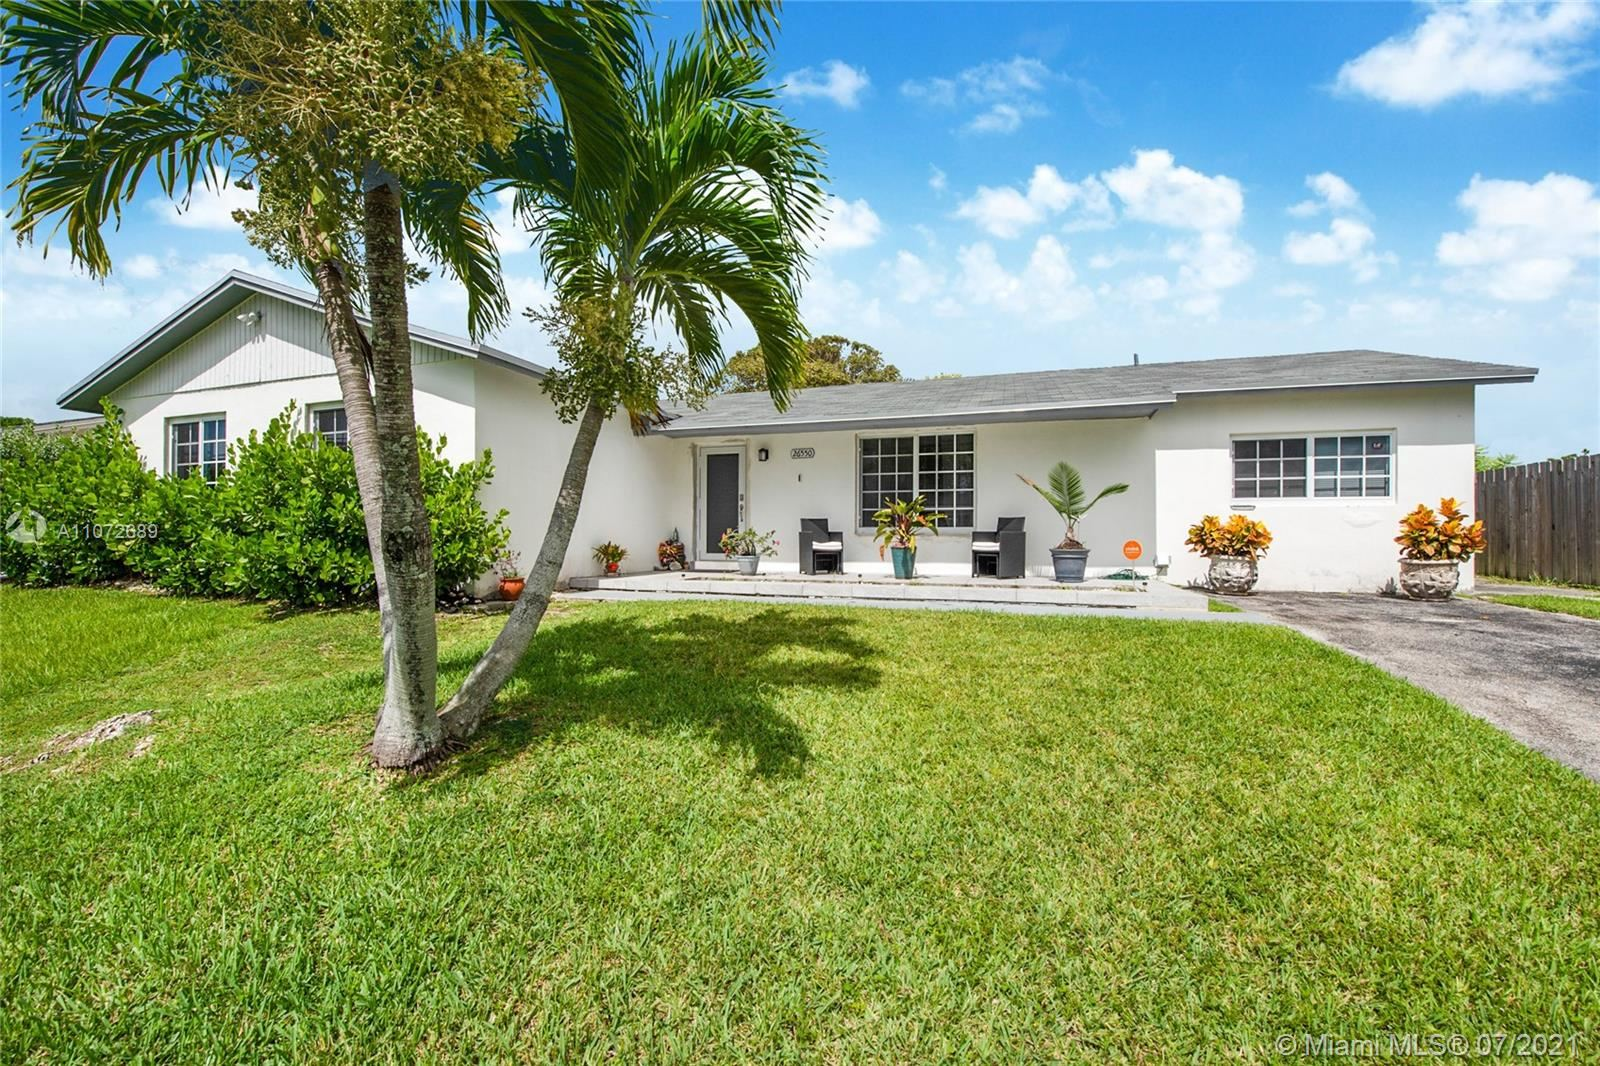 26550 SW 124th Ave, Homestead, FL 33032 - #: A11072689